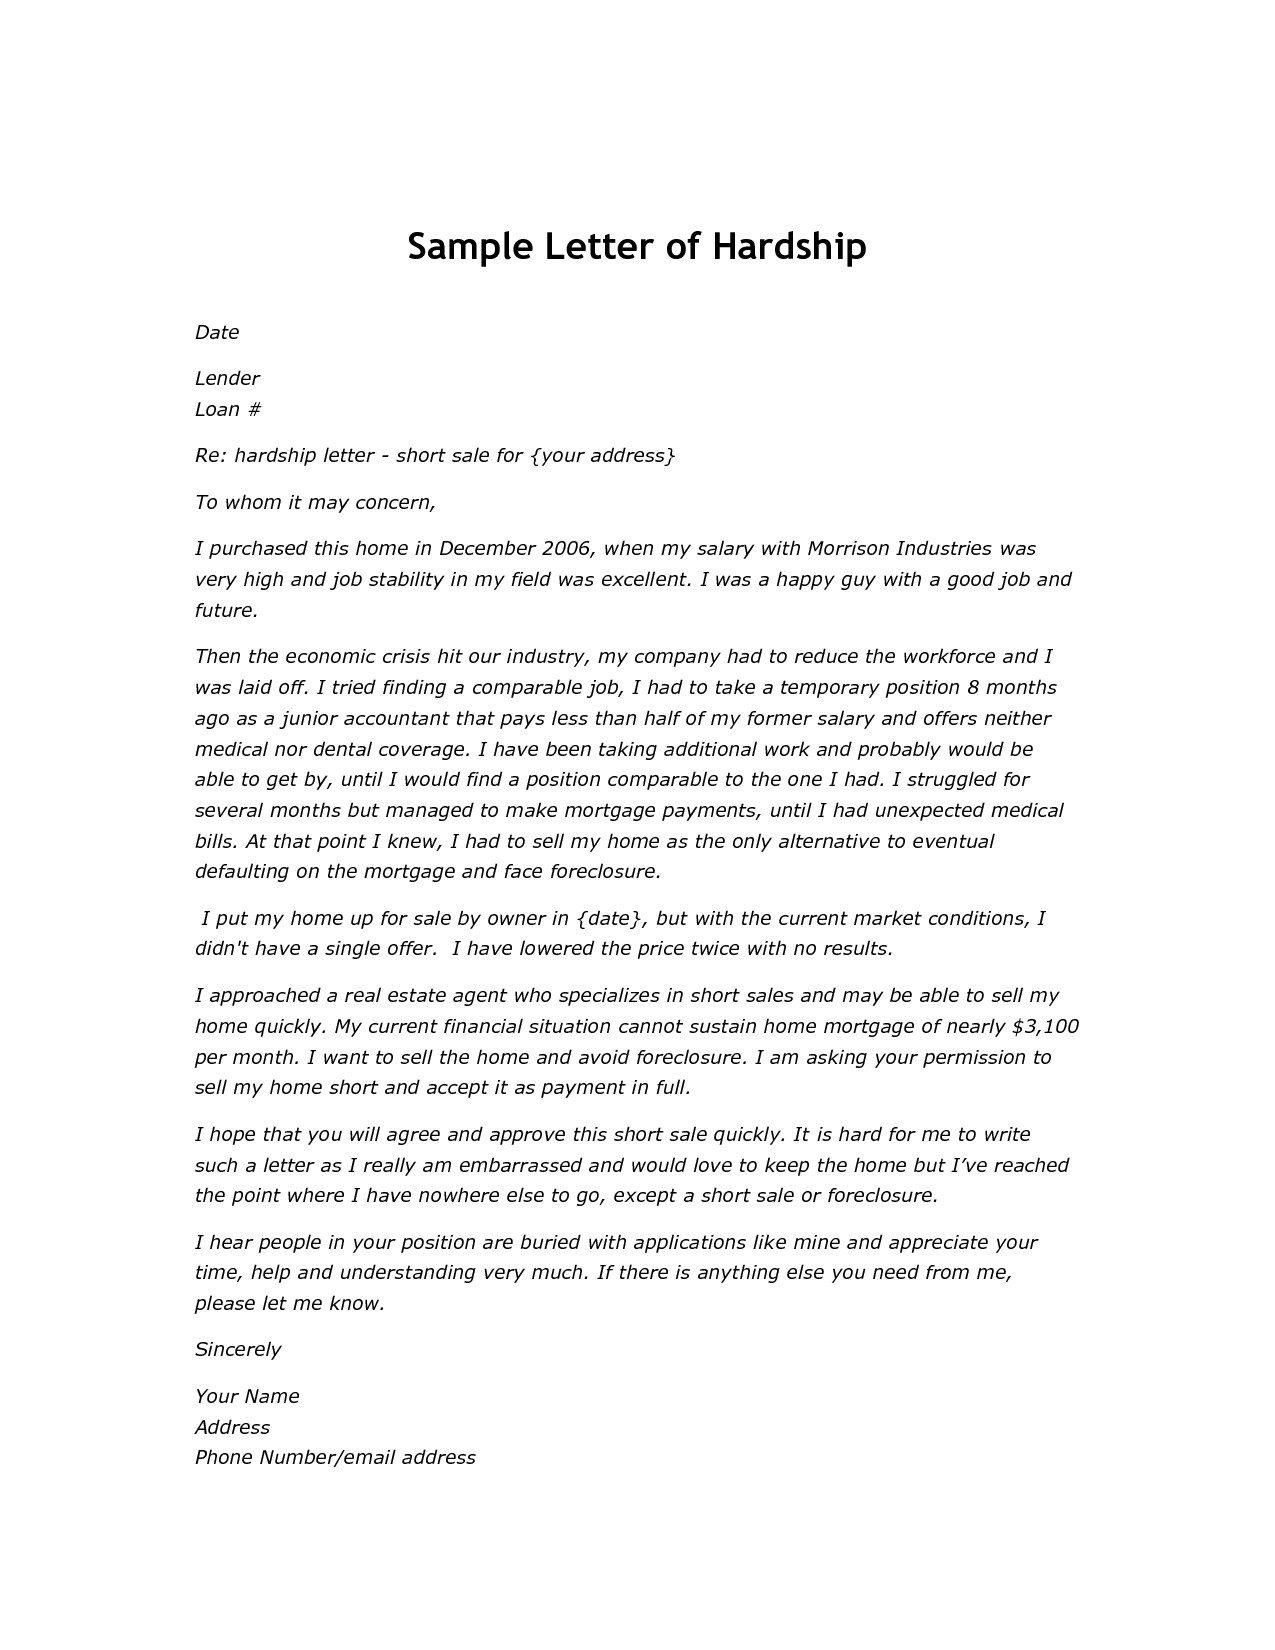 Mortgage Payment Shock Letter Template - Modification Hardship Letter Sample Letters for Loan Cover Example